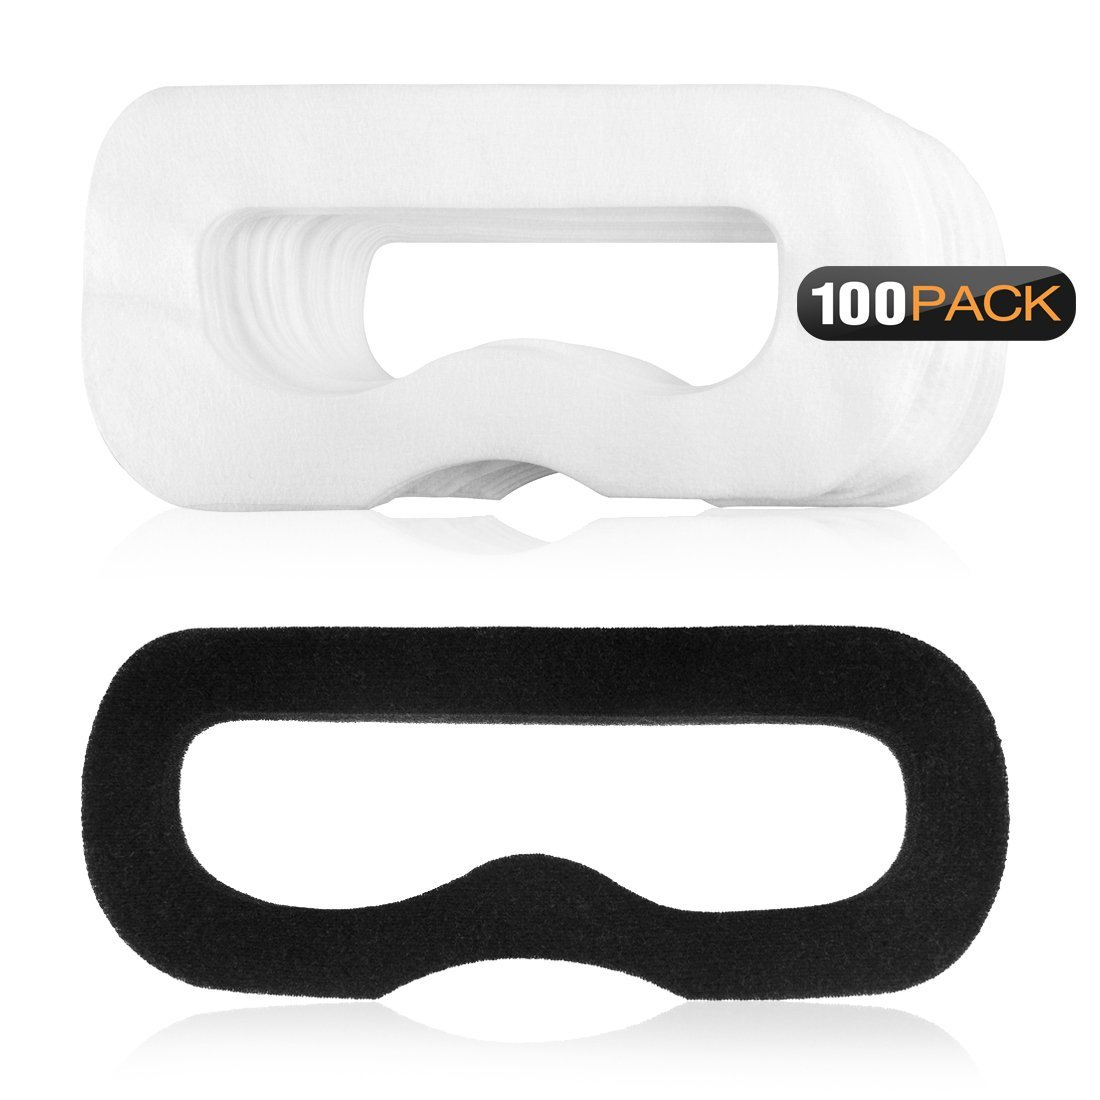 Geekria 100Pcs Disposable Face Cover Mask with 1 pcs and Magic Sticks for HTC Vive Virtual Reality/White Eye Mask for Playstation VR/Soft Breathable Non-Woven Fabrics for Headset VR SMPJ3901